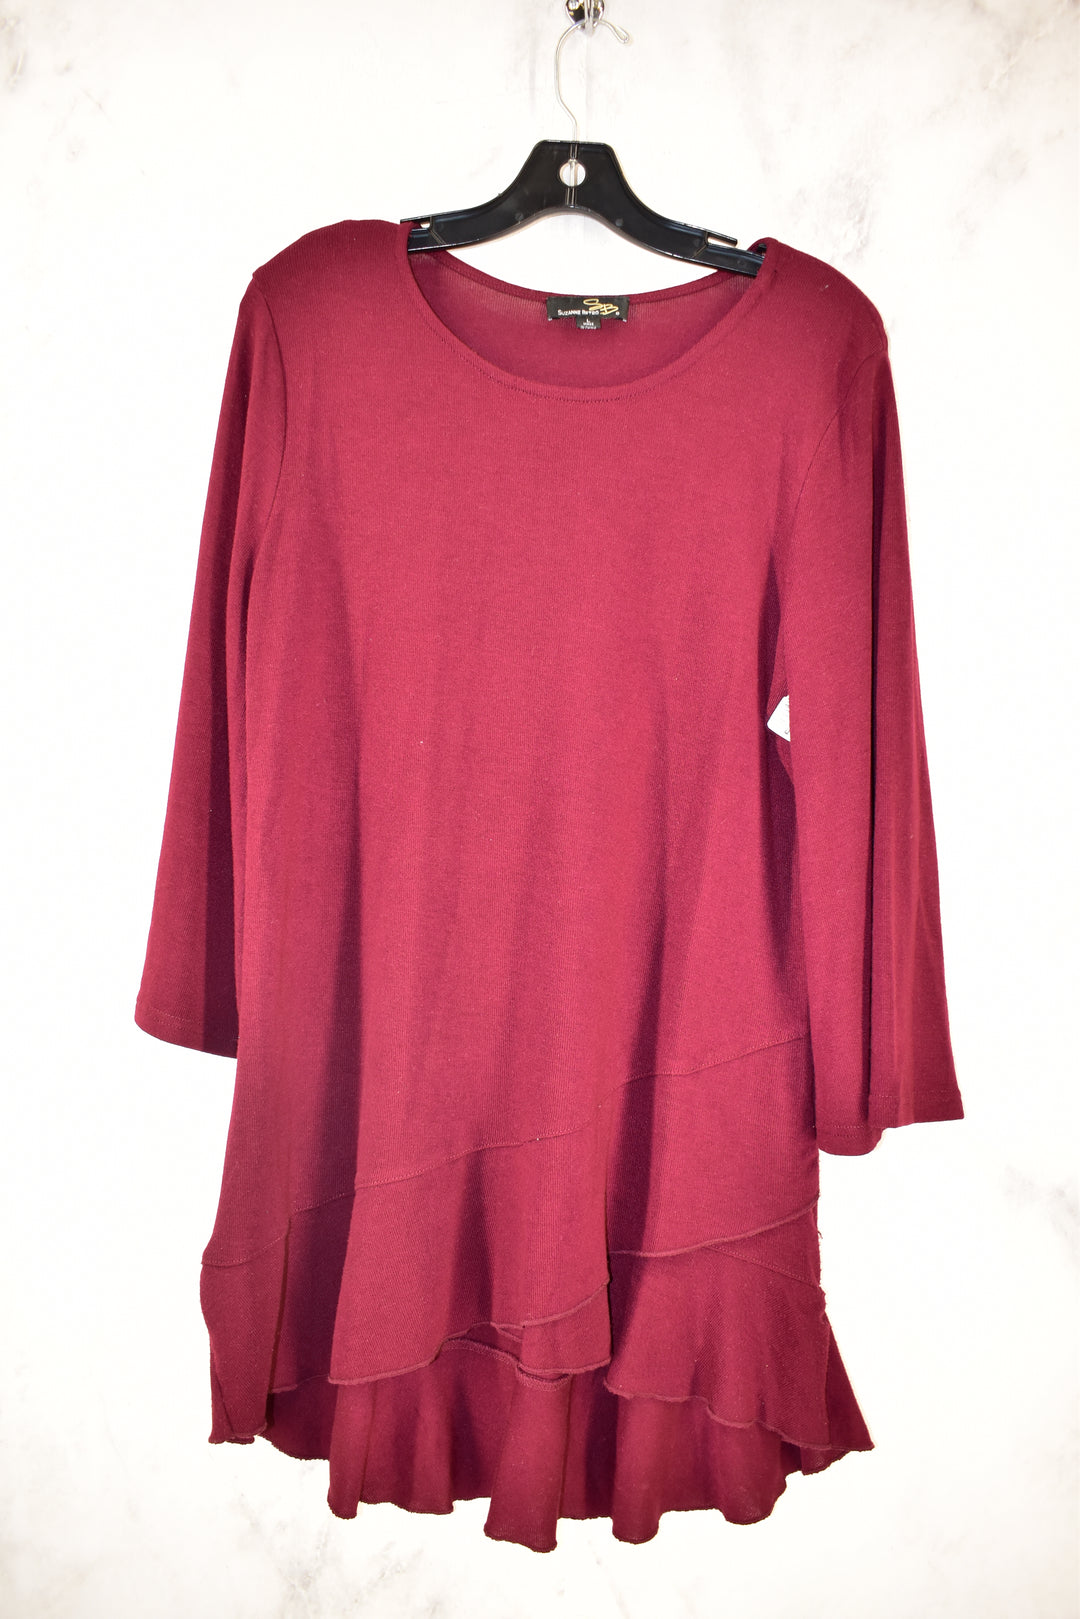 Primary Photo - BRAND: SUZANNE BETRO <BR>STYLE: TOP LONG SLEEVE <BR>COLOR: MAROON <BR>SIZE: L <BR>SKU: 186-186219-9